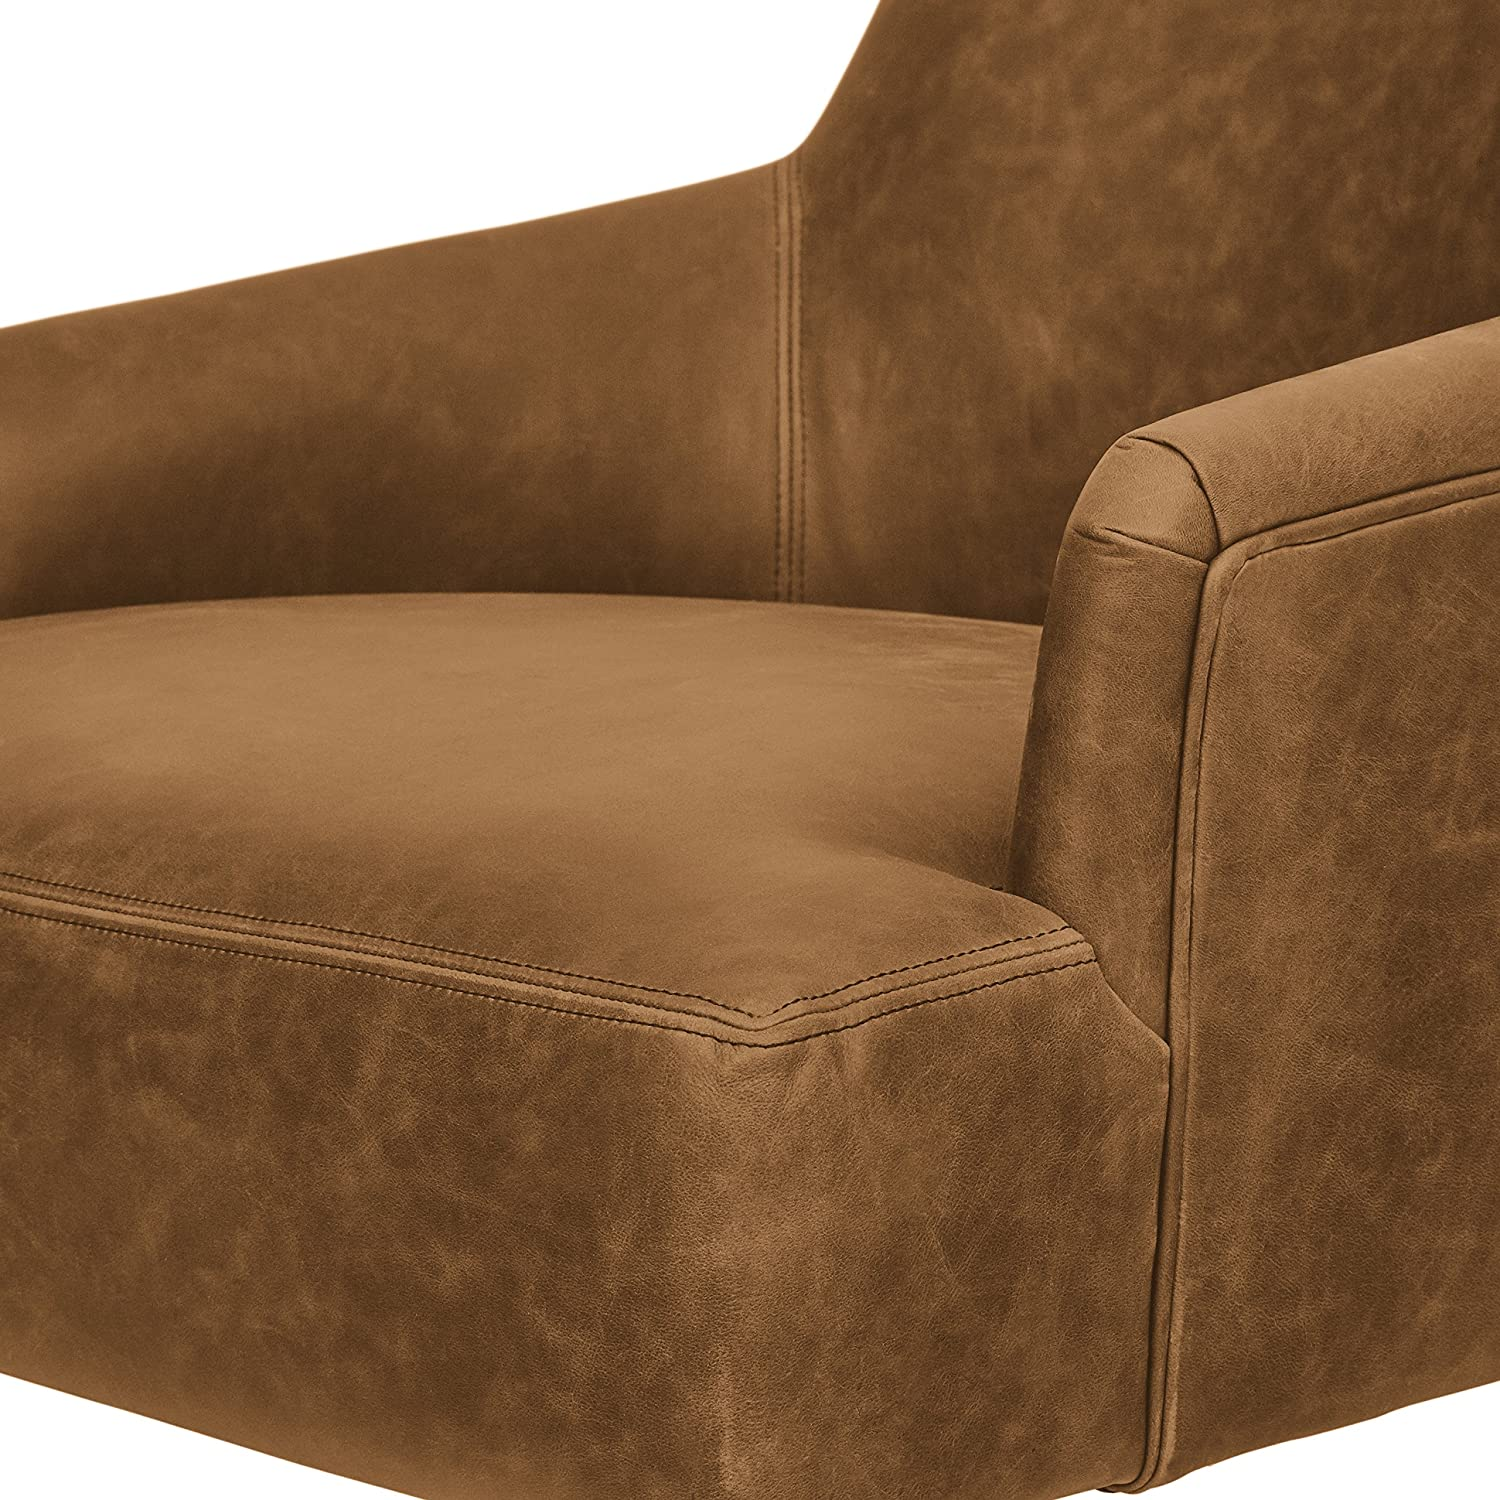 Rivet Zane Mid-Century Modern Swivel Top-Grain Leather Accent Chair, 28.75 W, Saddle